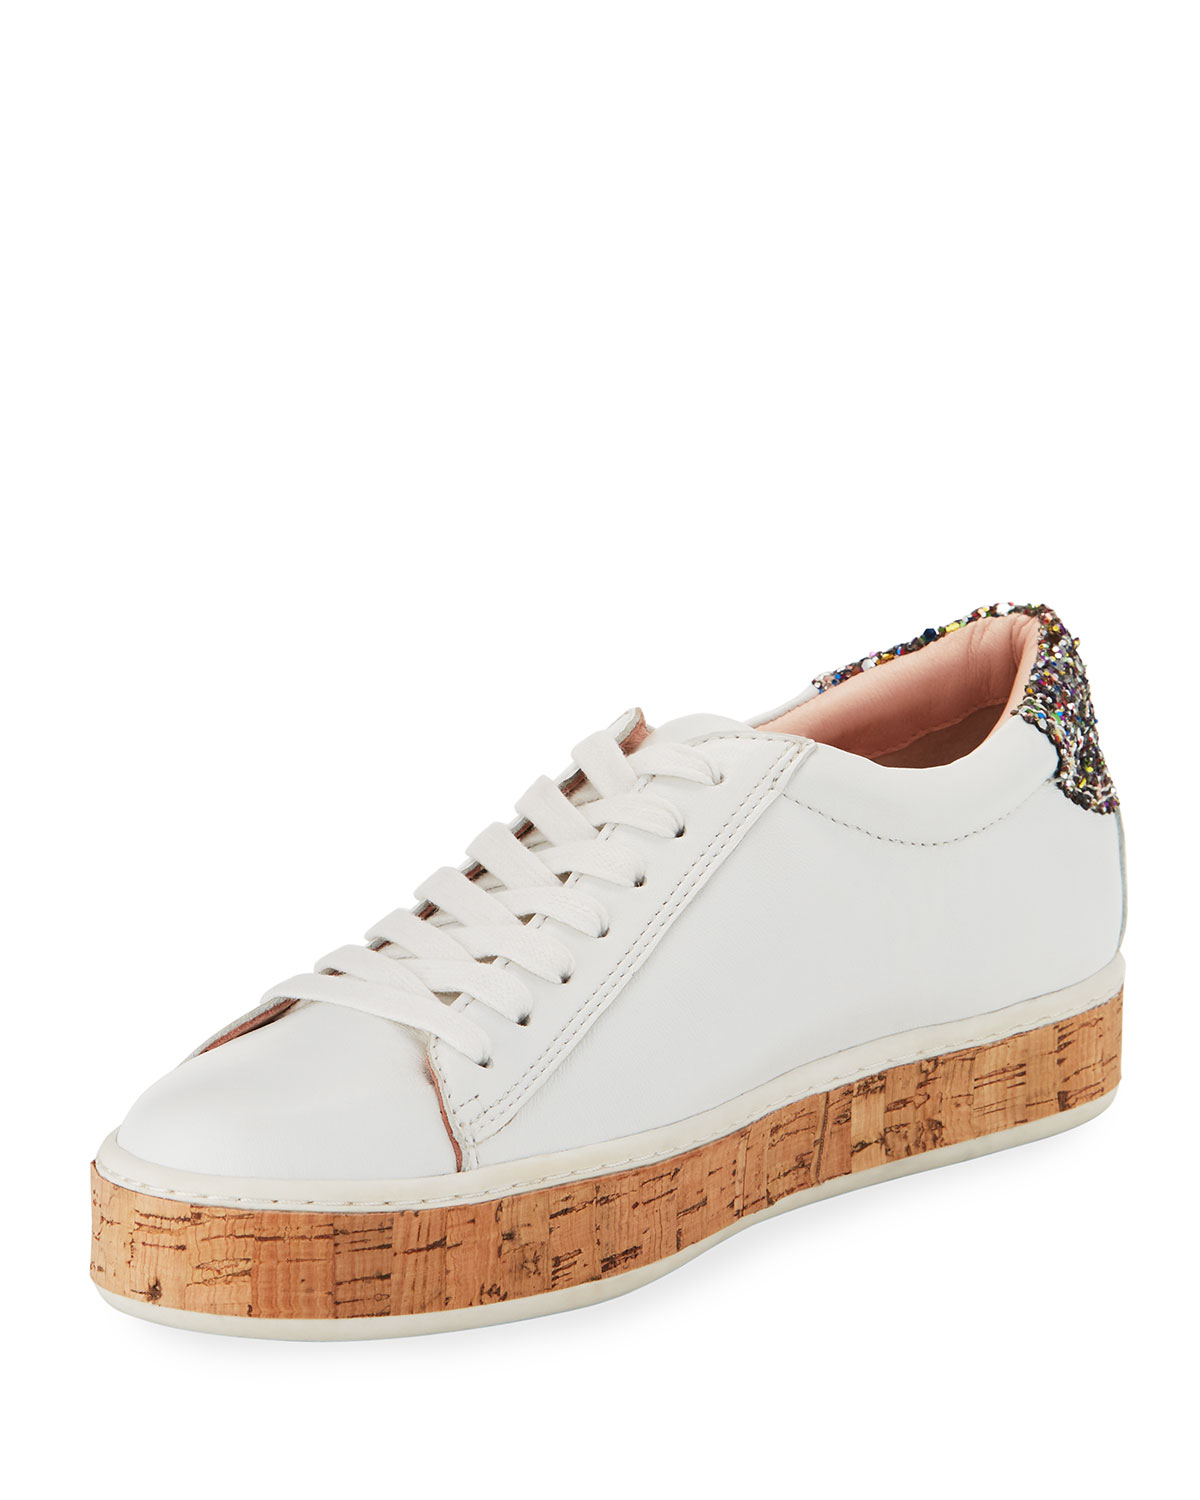 4240c32ca374 kate spade new york amy cork embellished sneaker